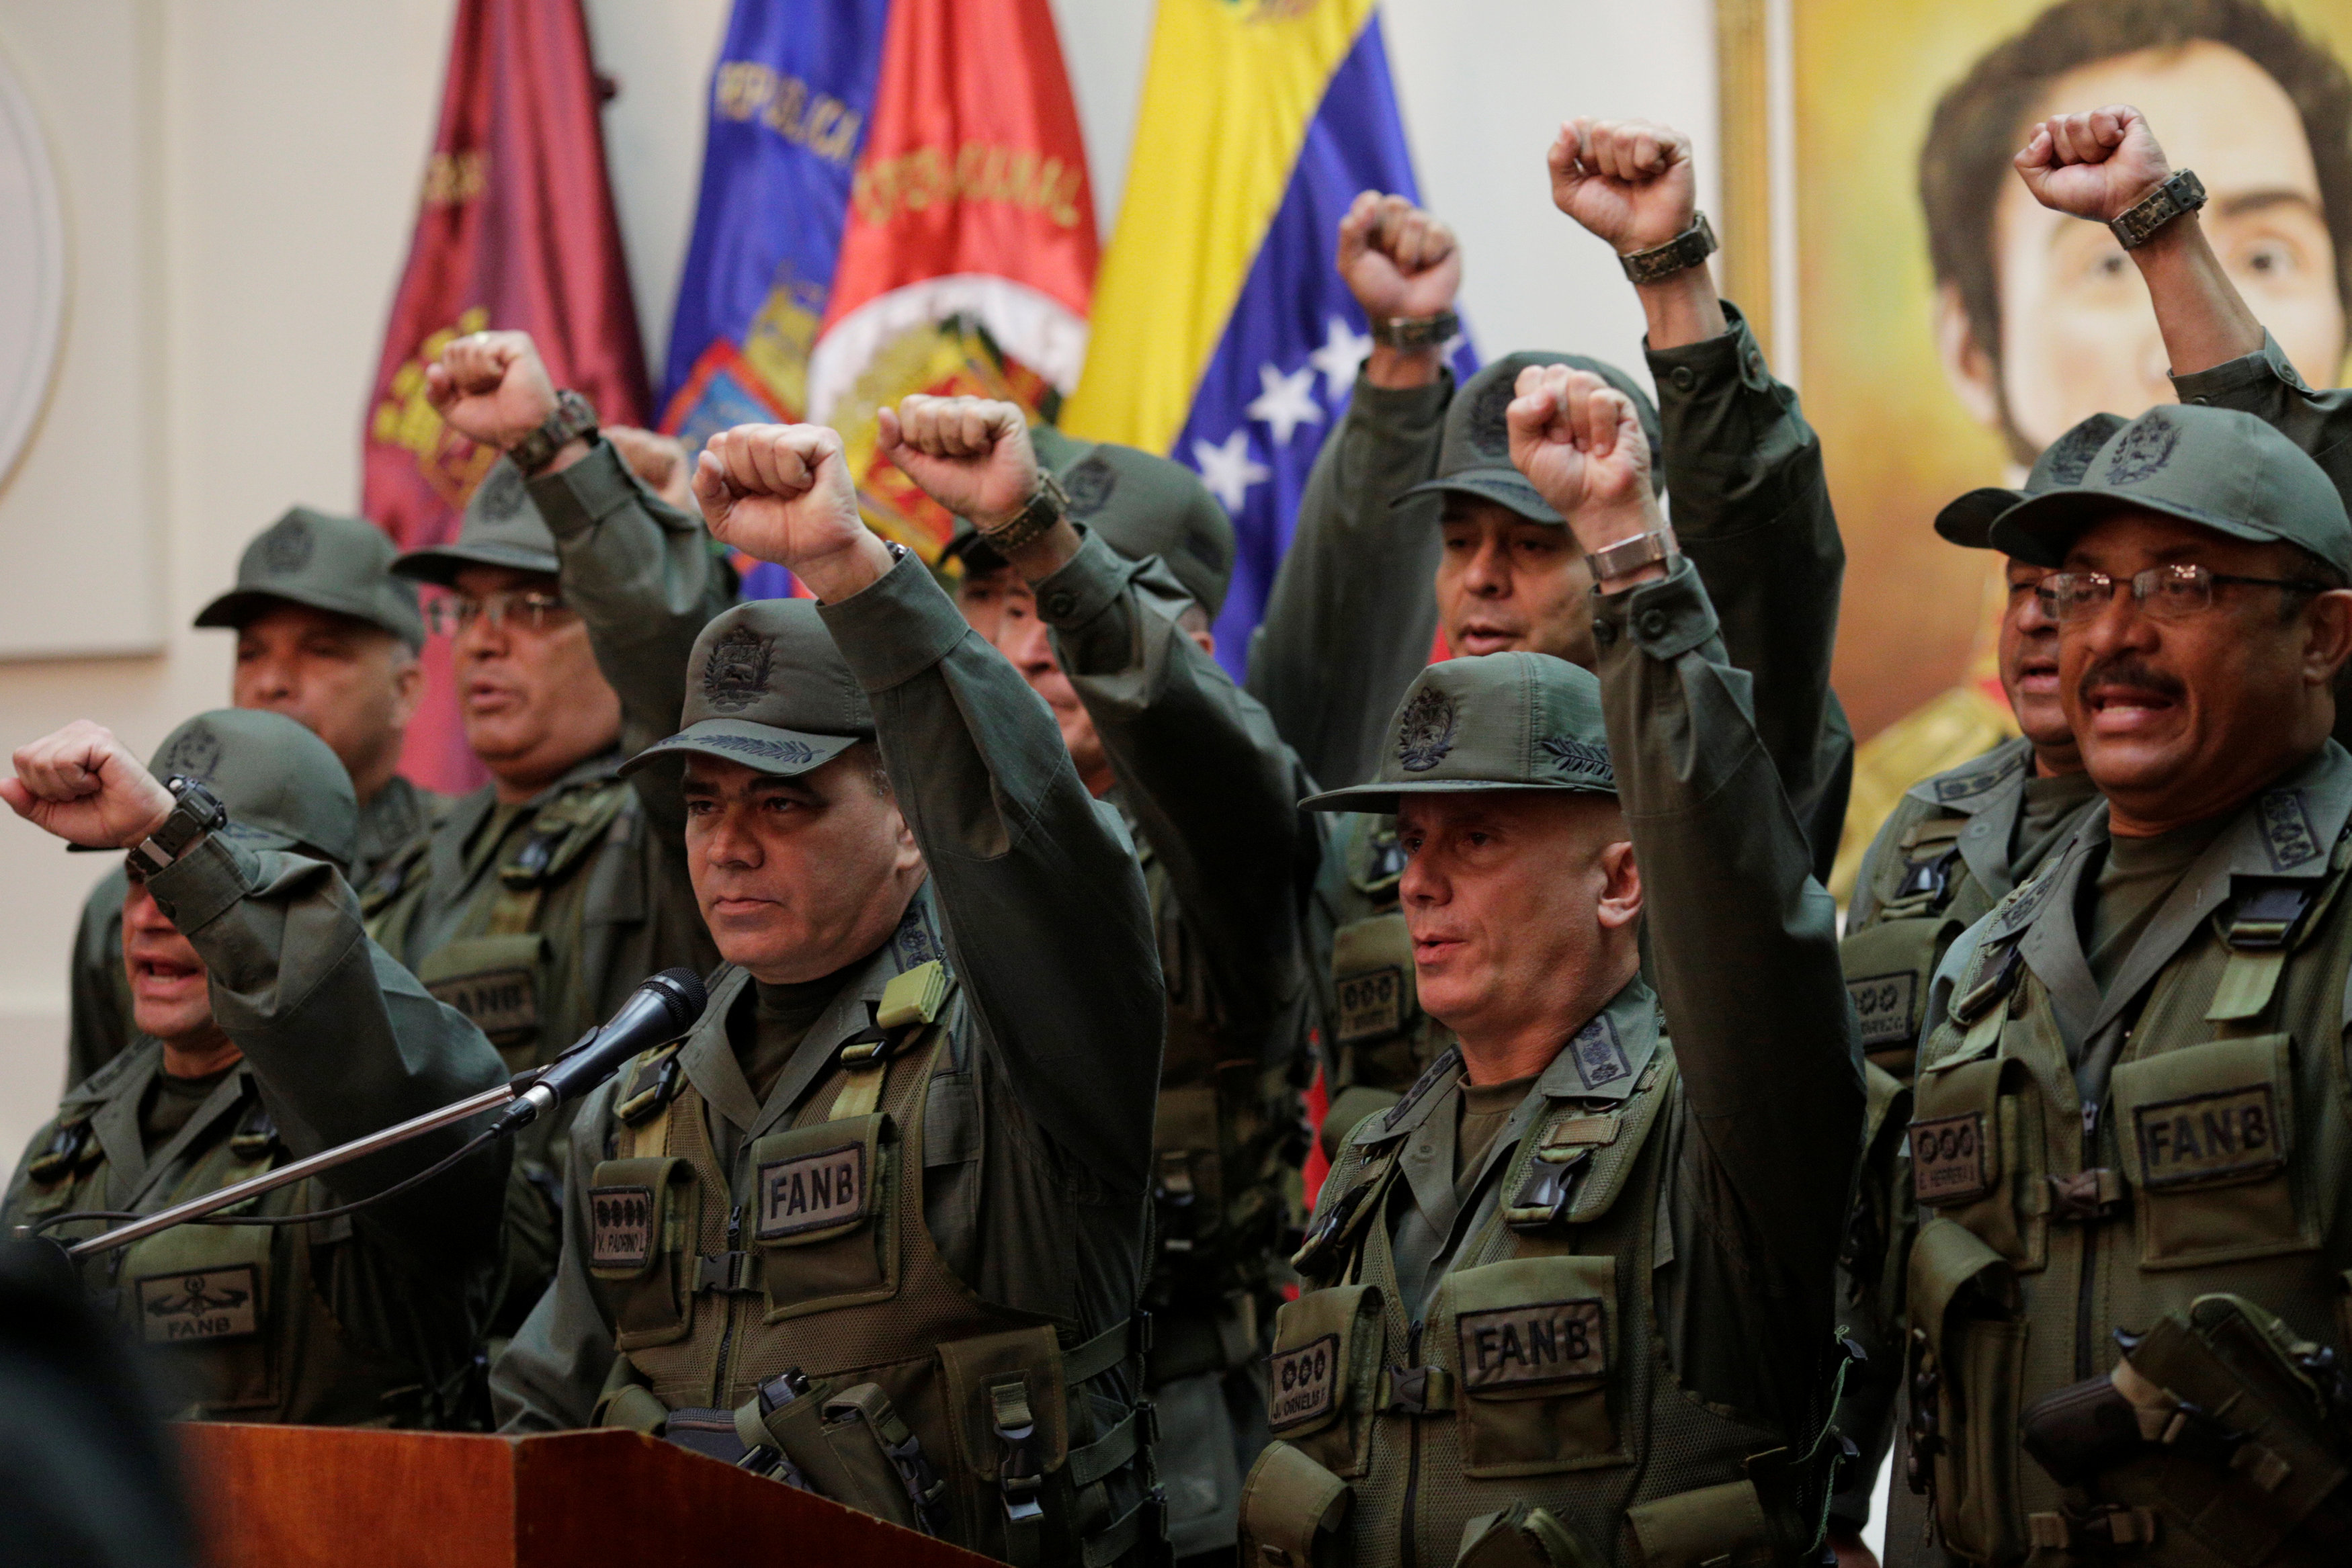 Venezuela's Defense Minister Vladimir Padrino Lopez, accompanied by members of the military high command, attends a news conference in Caracas, Venezuela, July 19, 2017.  REUTERS/Marco Bello